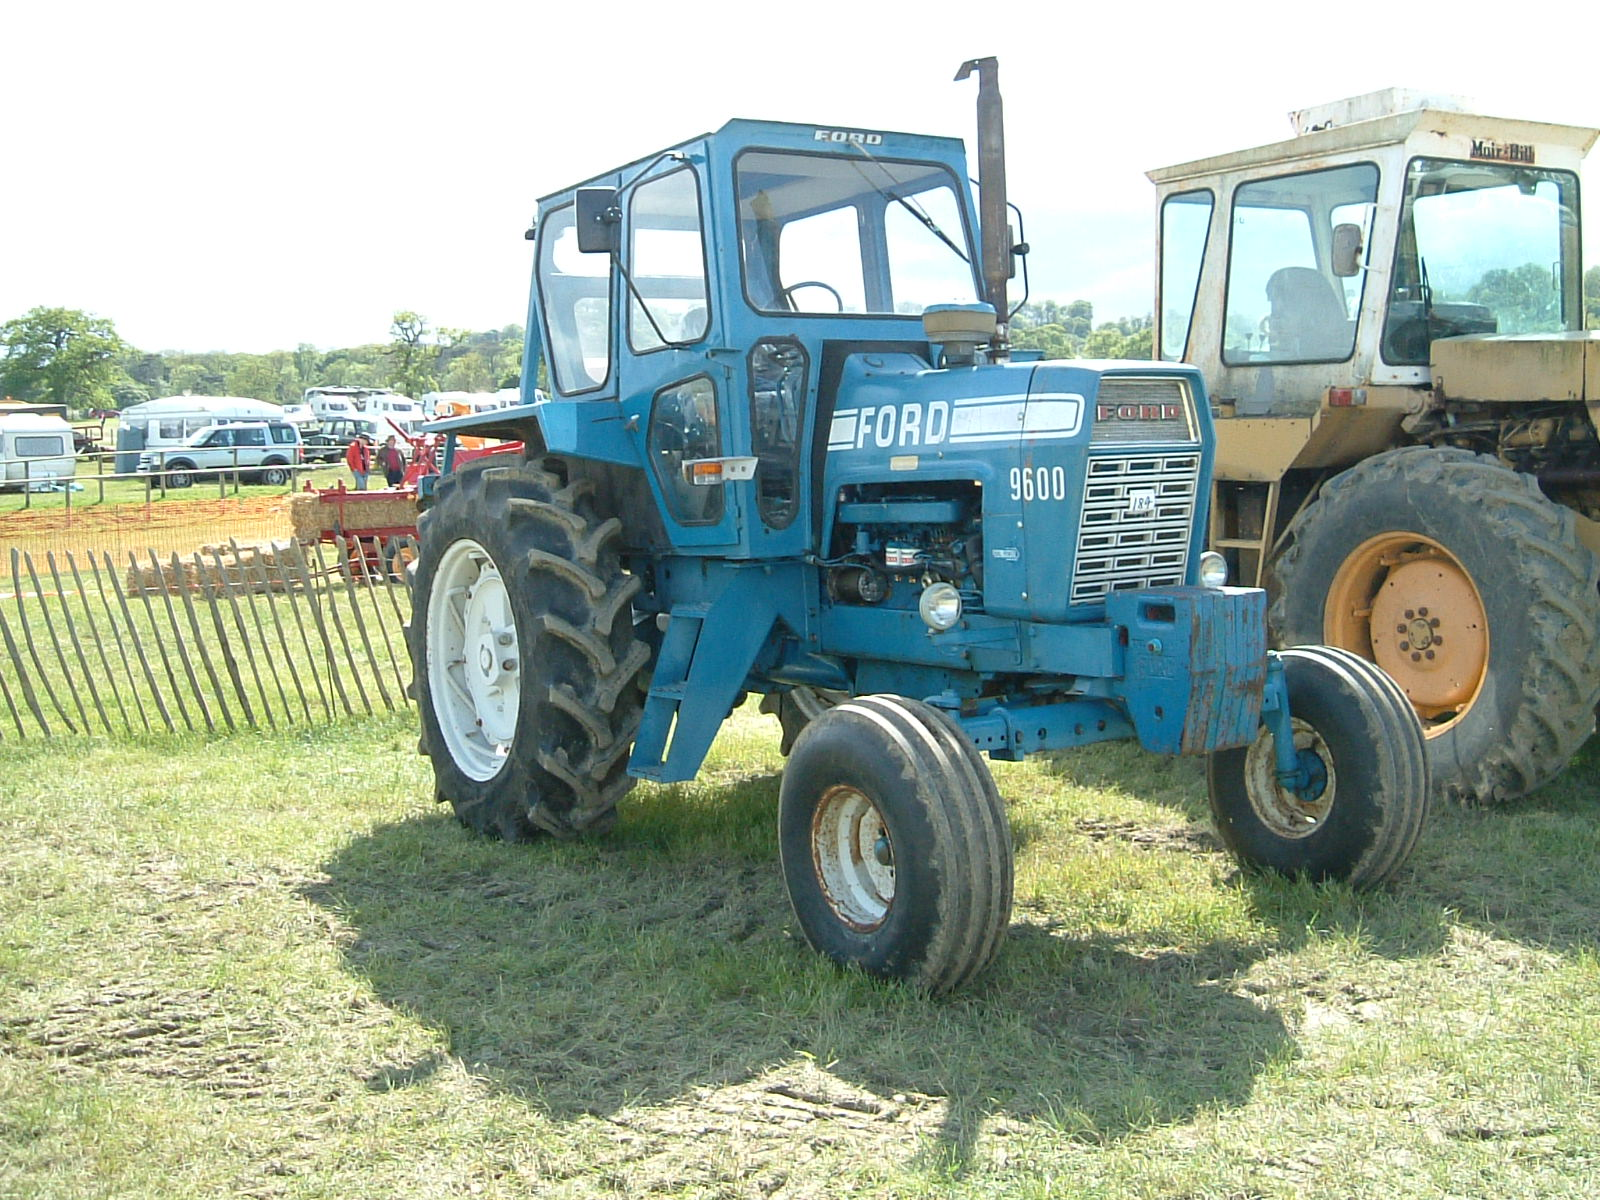 Ford 9600 Tractor : Ford tractor construction plant wiki fandom